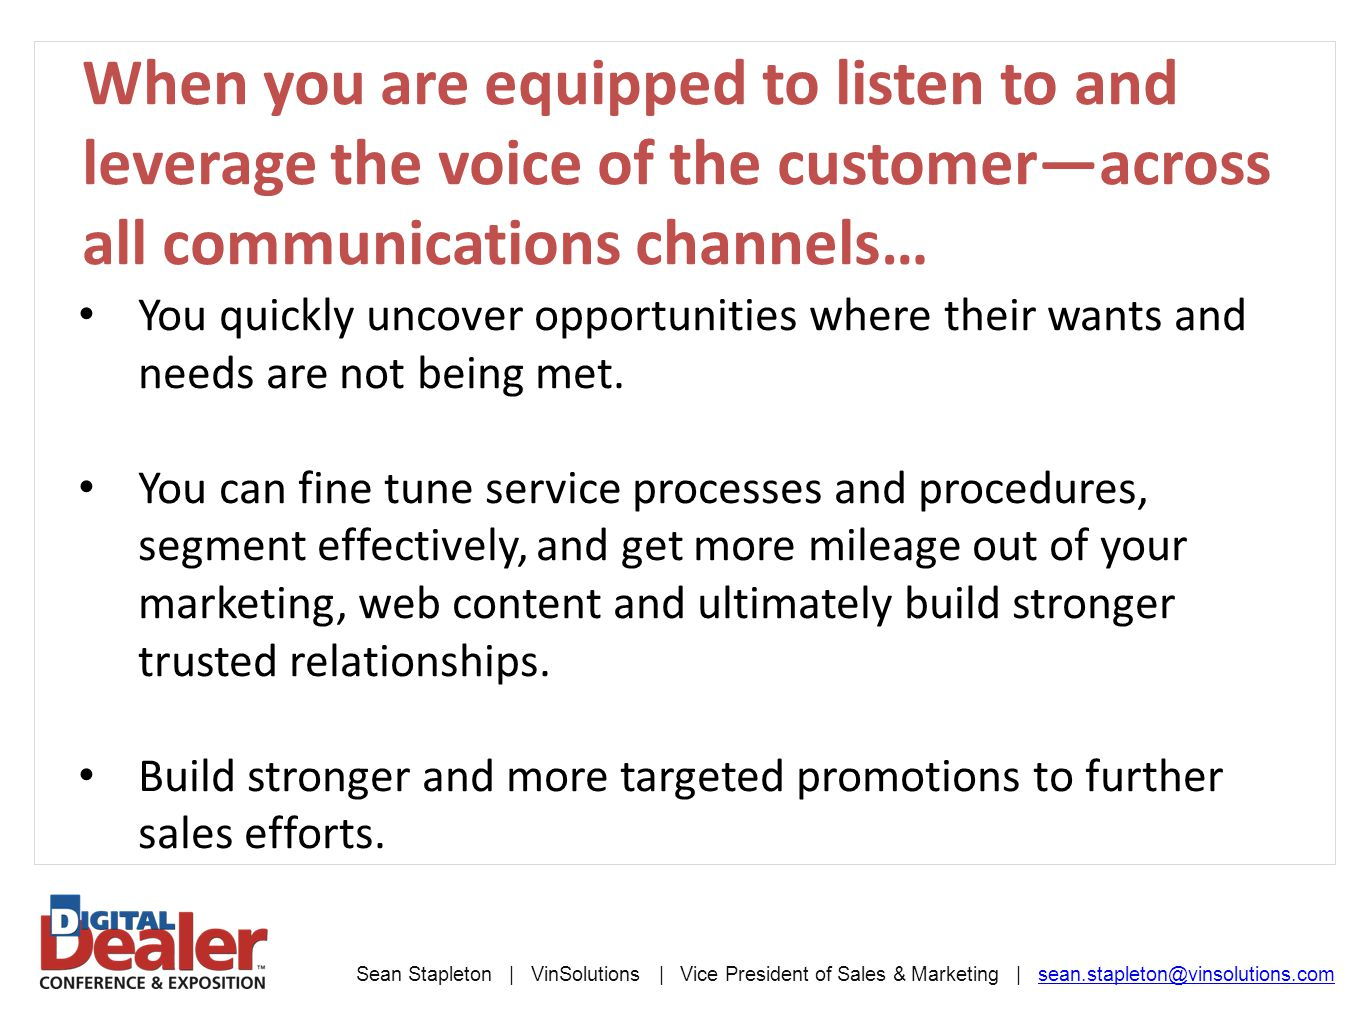 Sean Stapleton | VinSolutions | Vice President of Sales & Marketing | sean.stapleton@vinsolutions.comsean.stapleton@vinsolutions.com When you are equipped to listen to and leverage the voice of the customer—across all communications channels… You quickly uncover opportunities where their wants and needs are not being met.